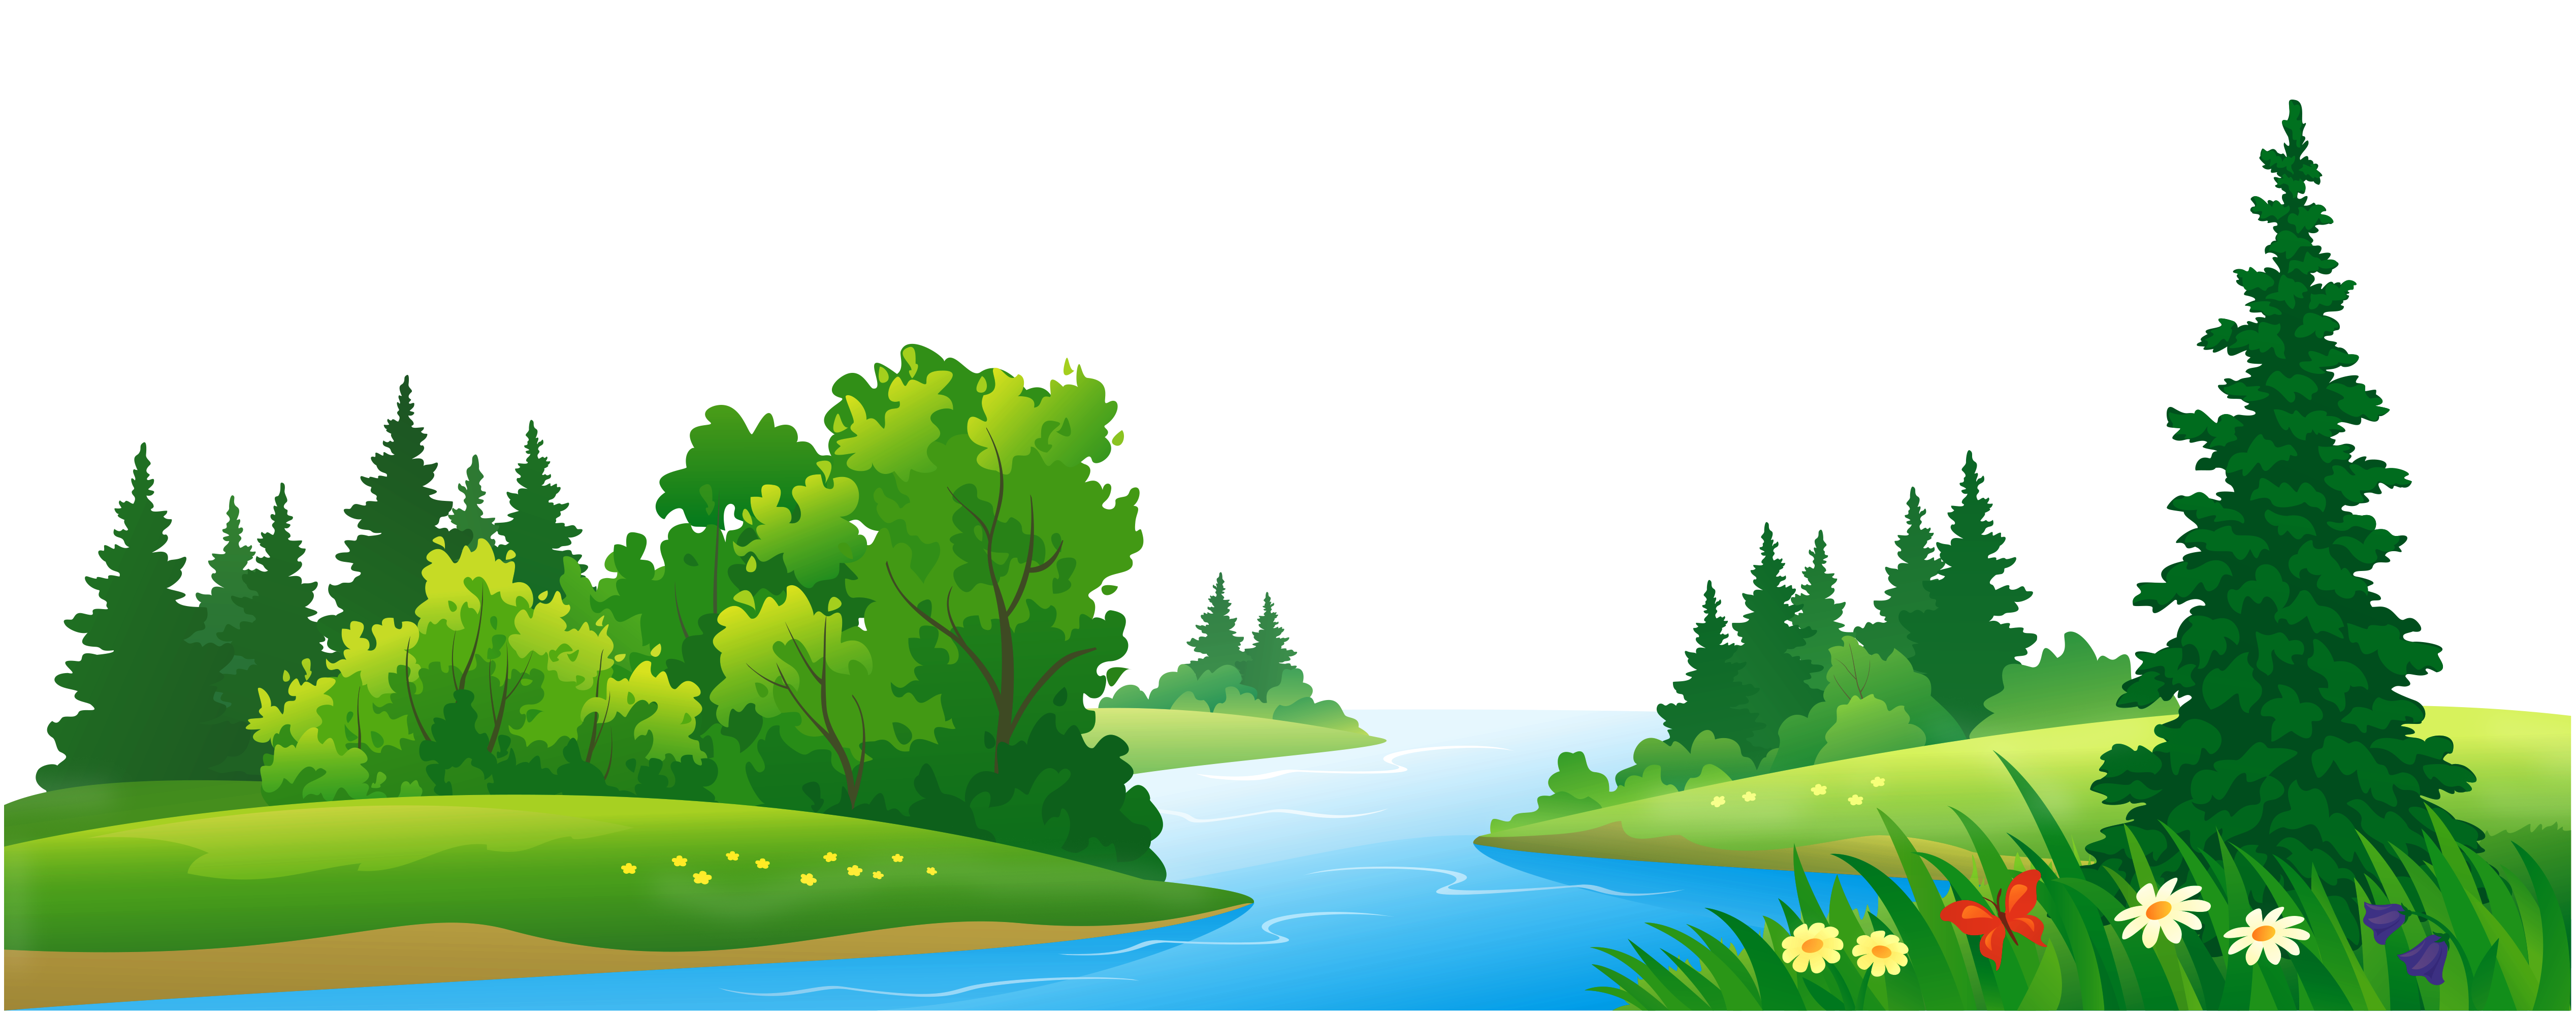 Grass and trees transparent. Clipart lake